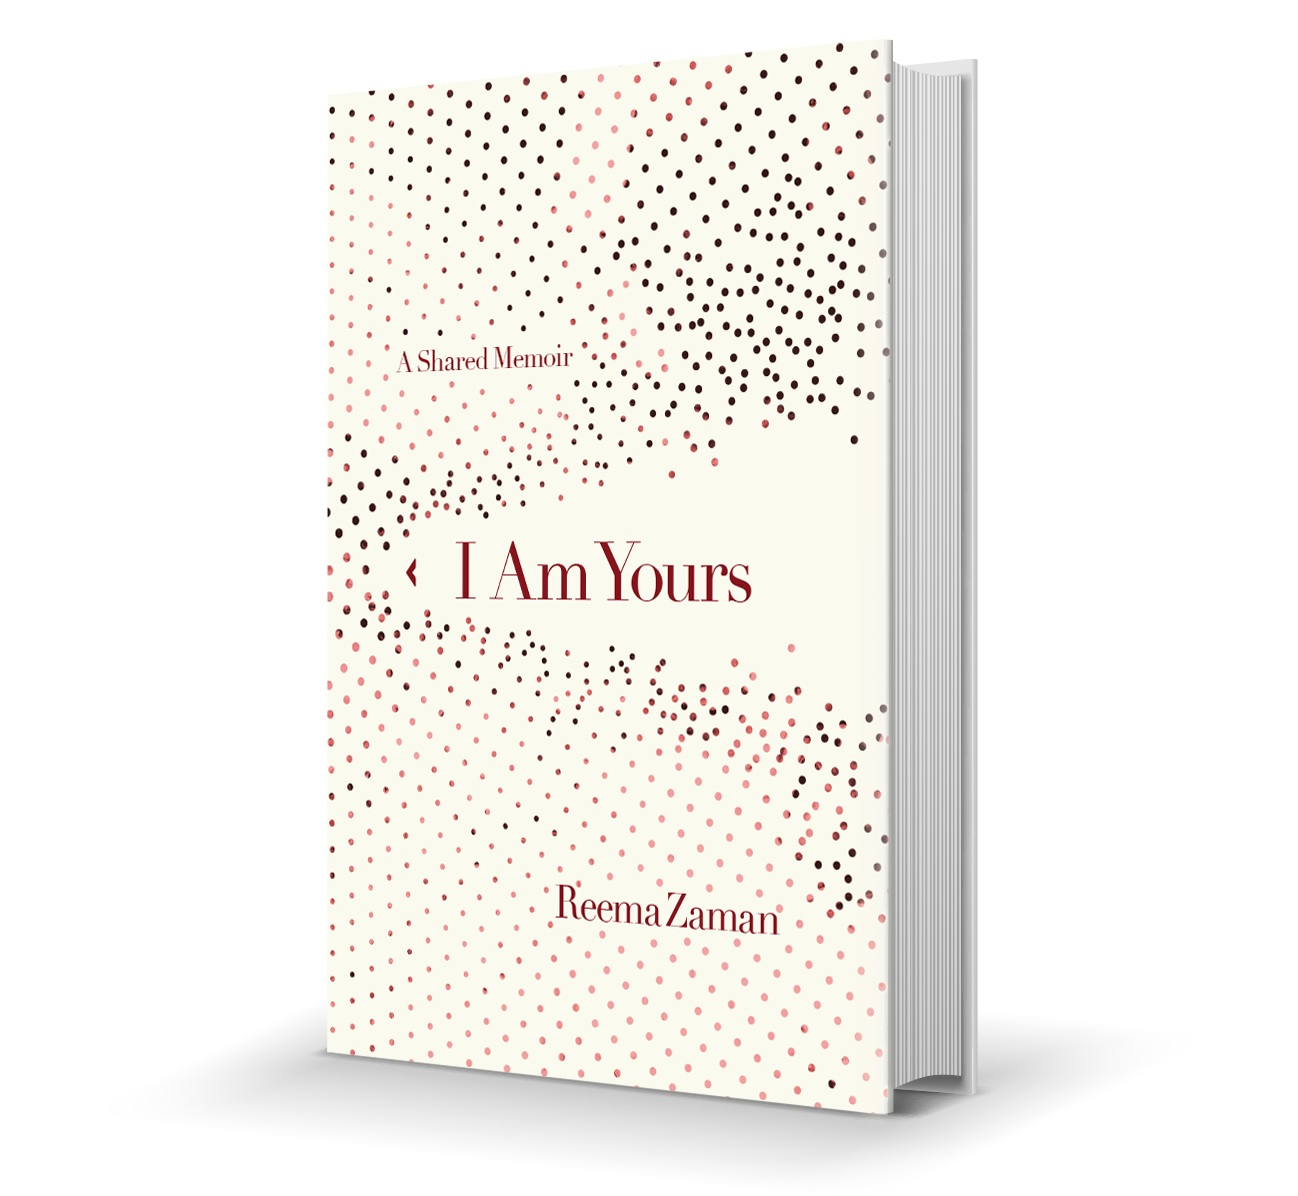 I am Yours book cover, dots flying off page